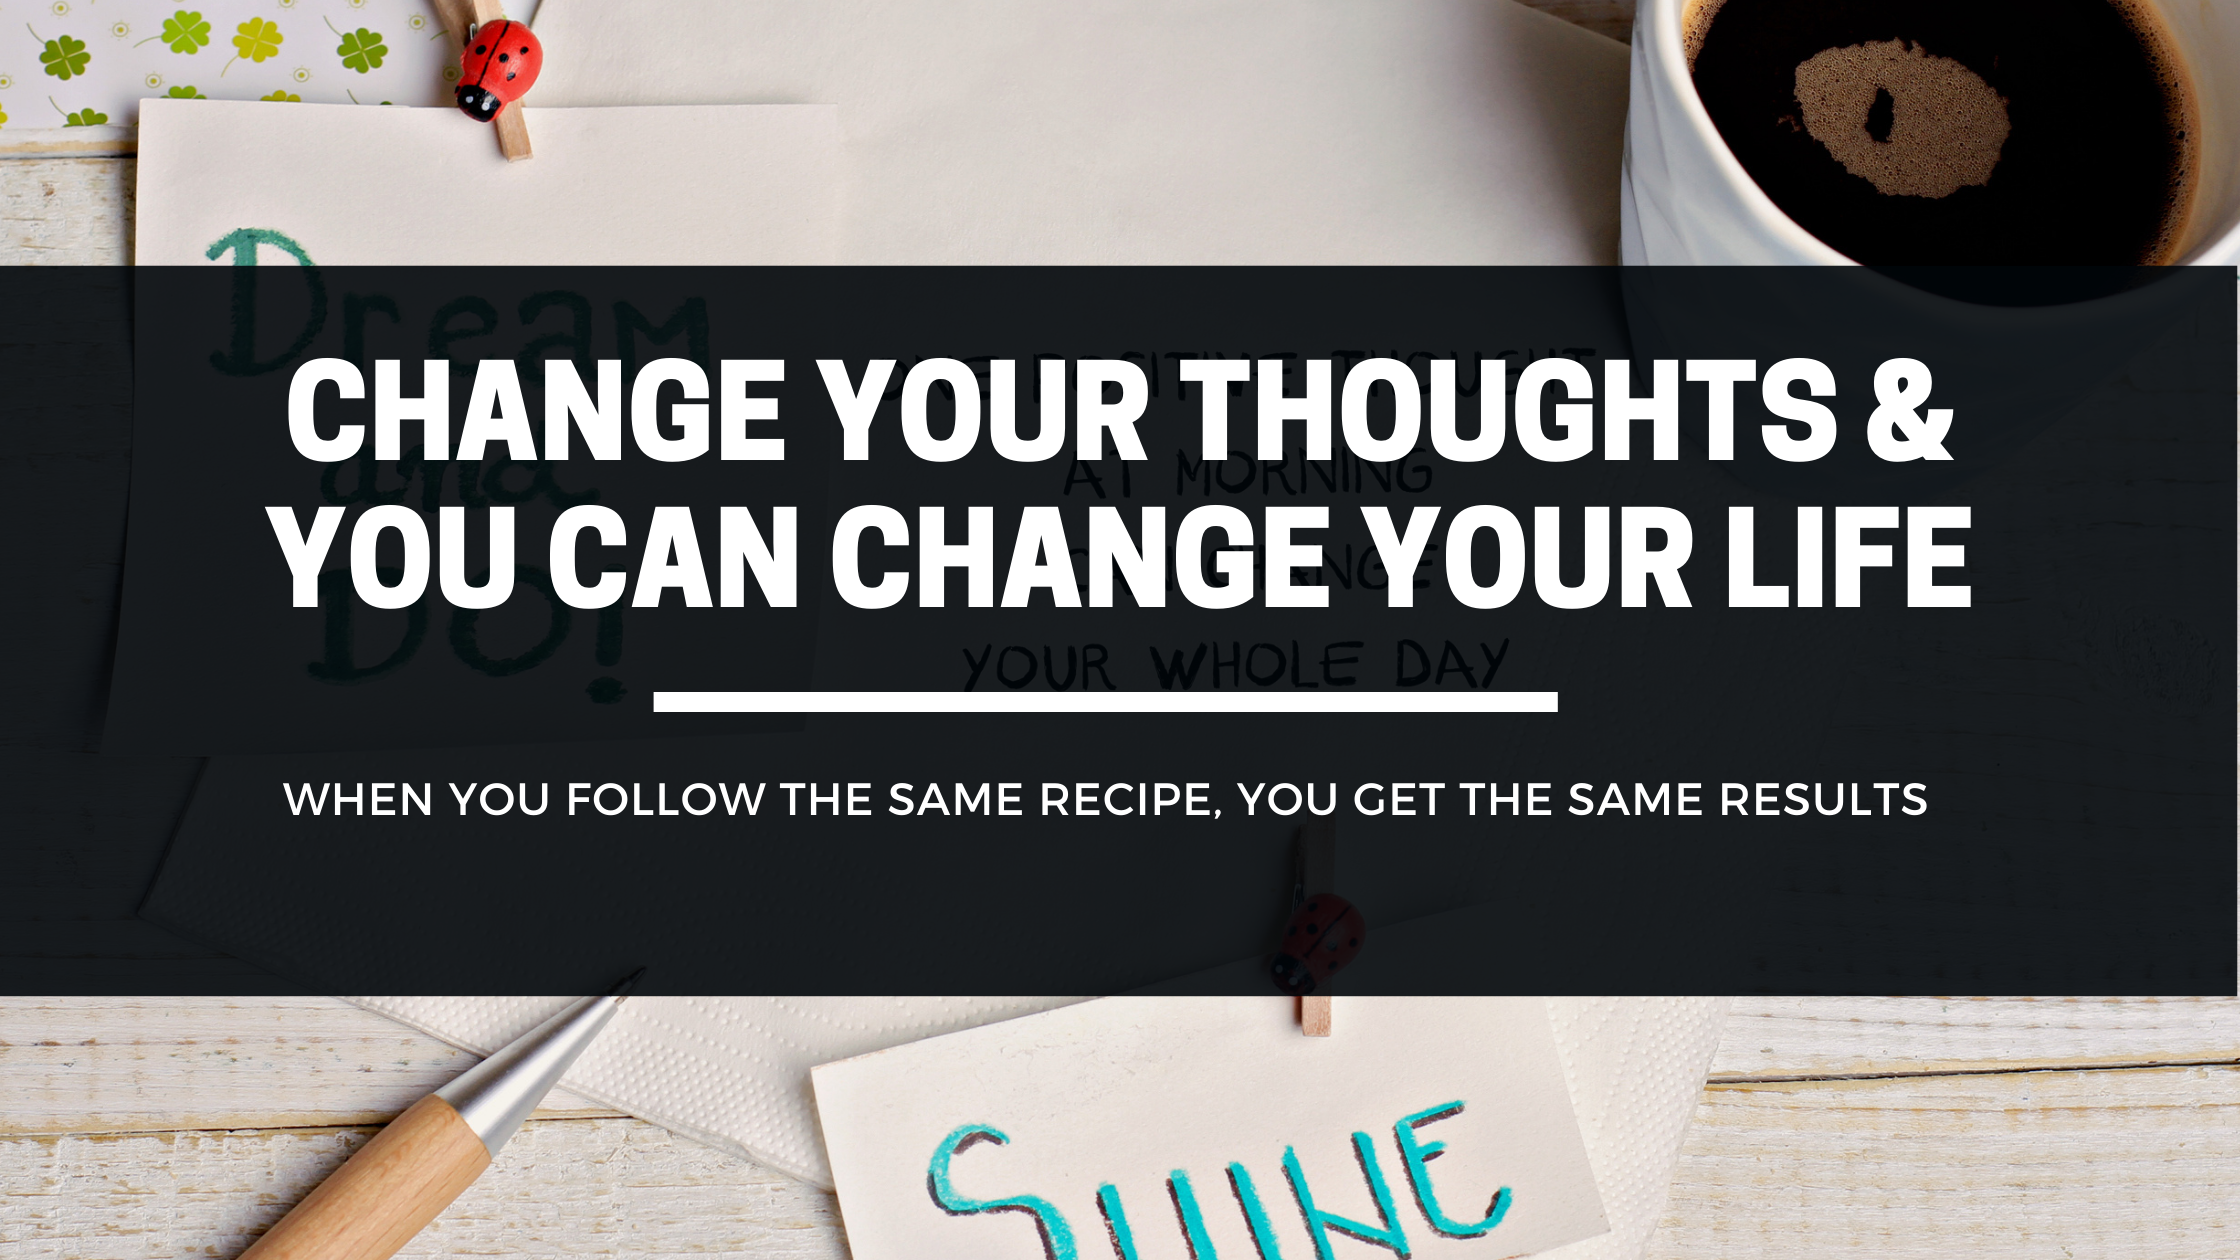 Change Your Thoughts & You Can Change Your Life